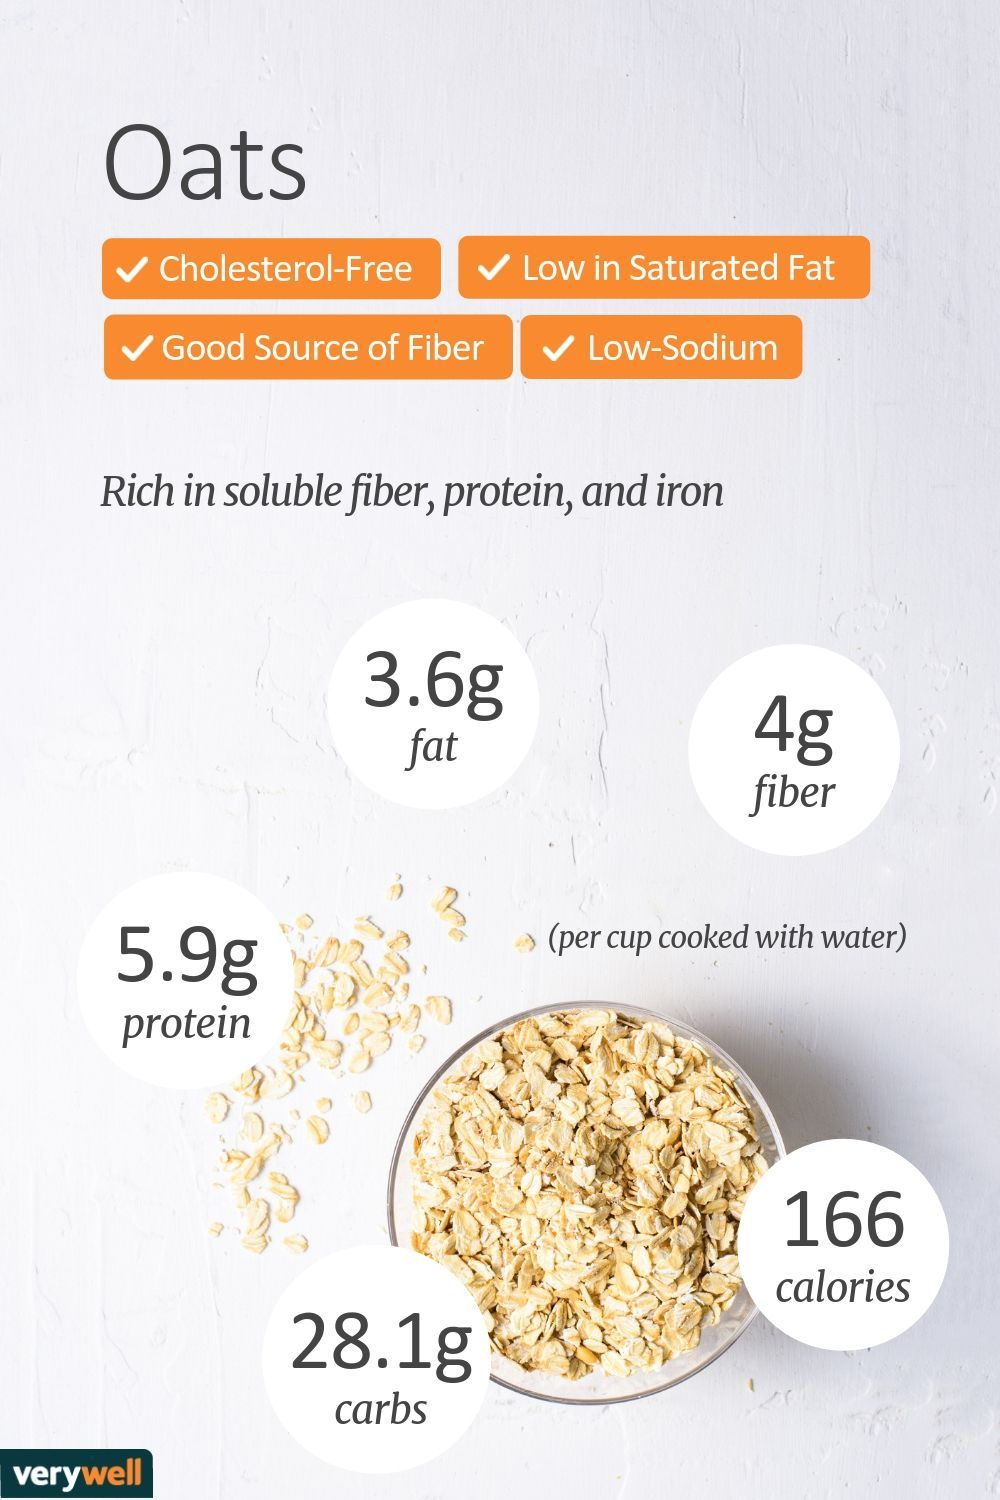 Oatmeal Nutrition Facts and Health Benefits